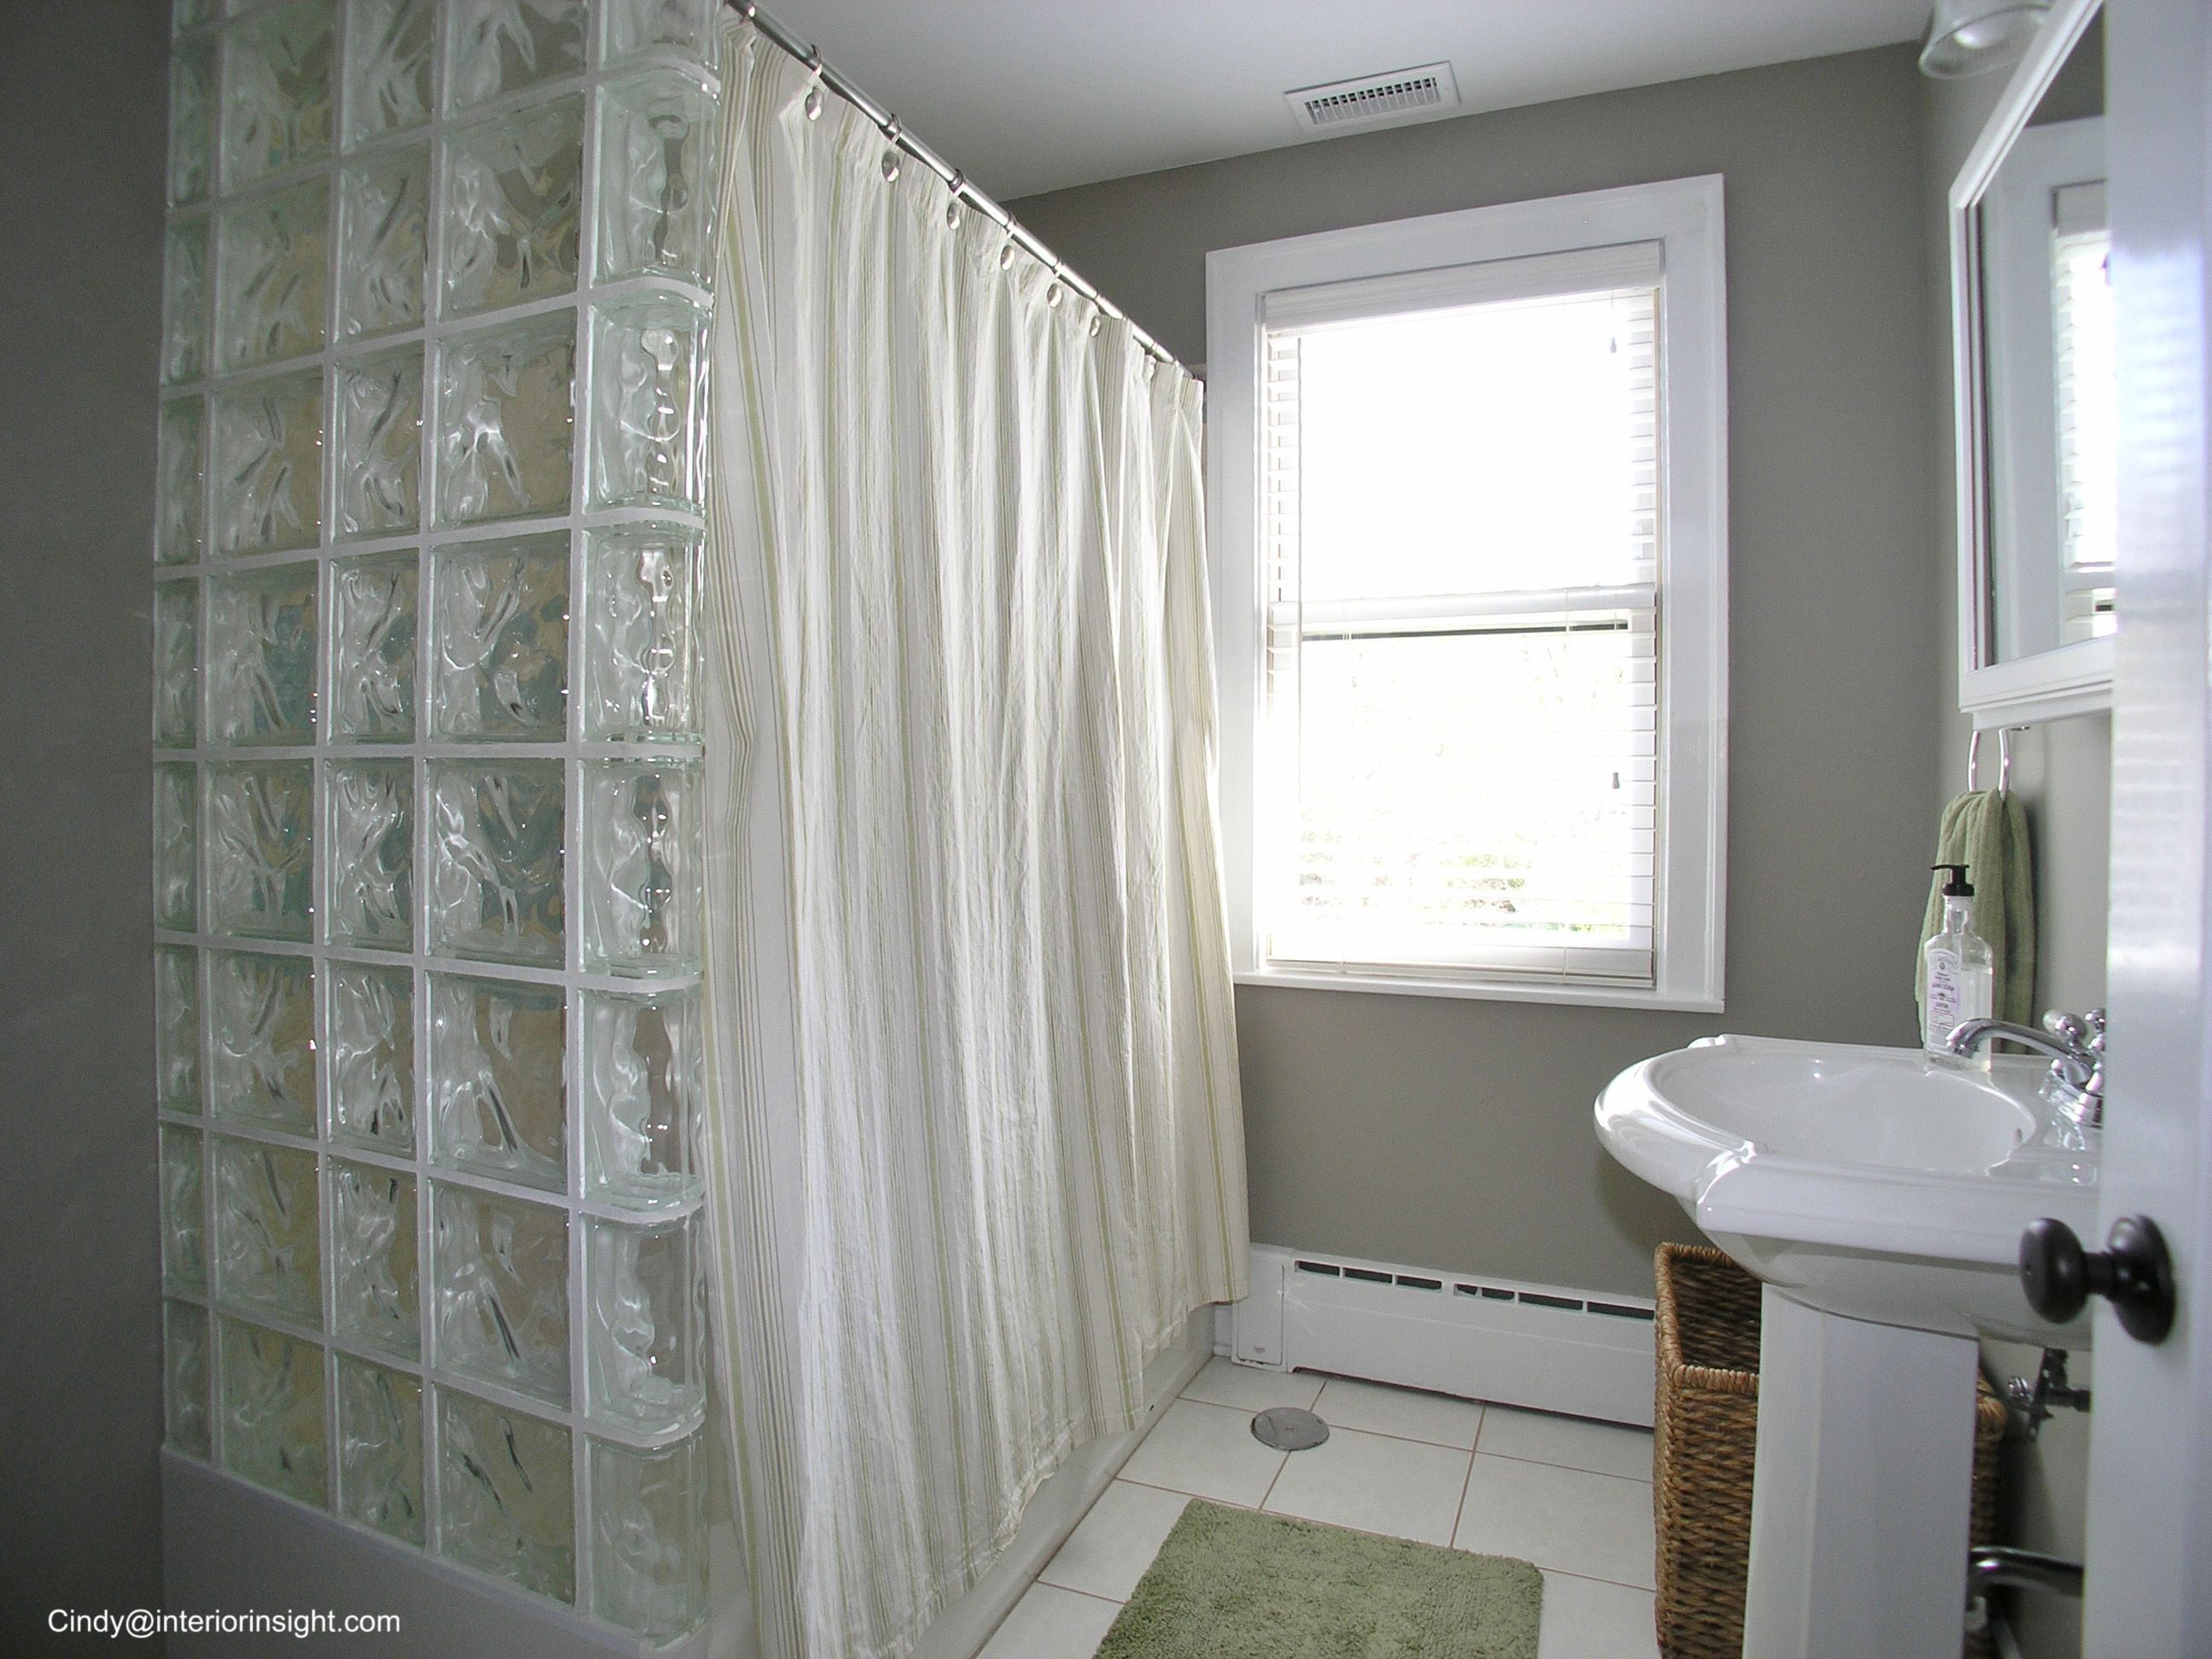 Glass Block in this bathroom tub wall keeps the light coming thru  http://www.tourfactory.com/847549